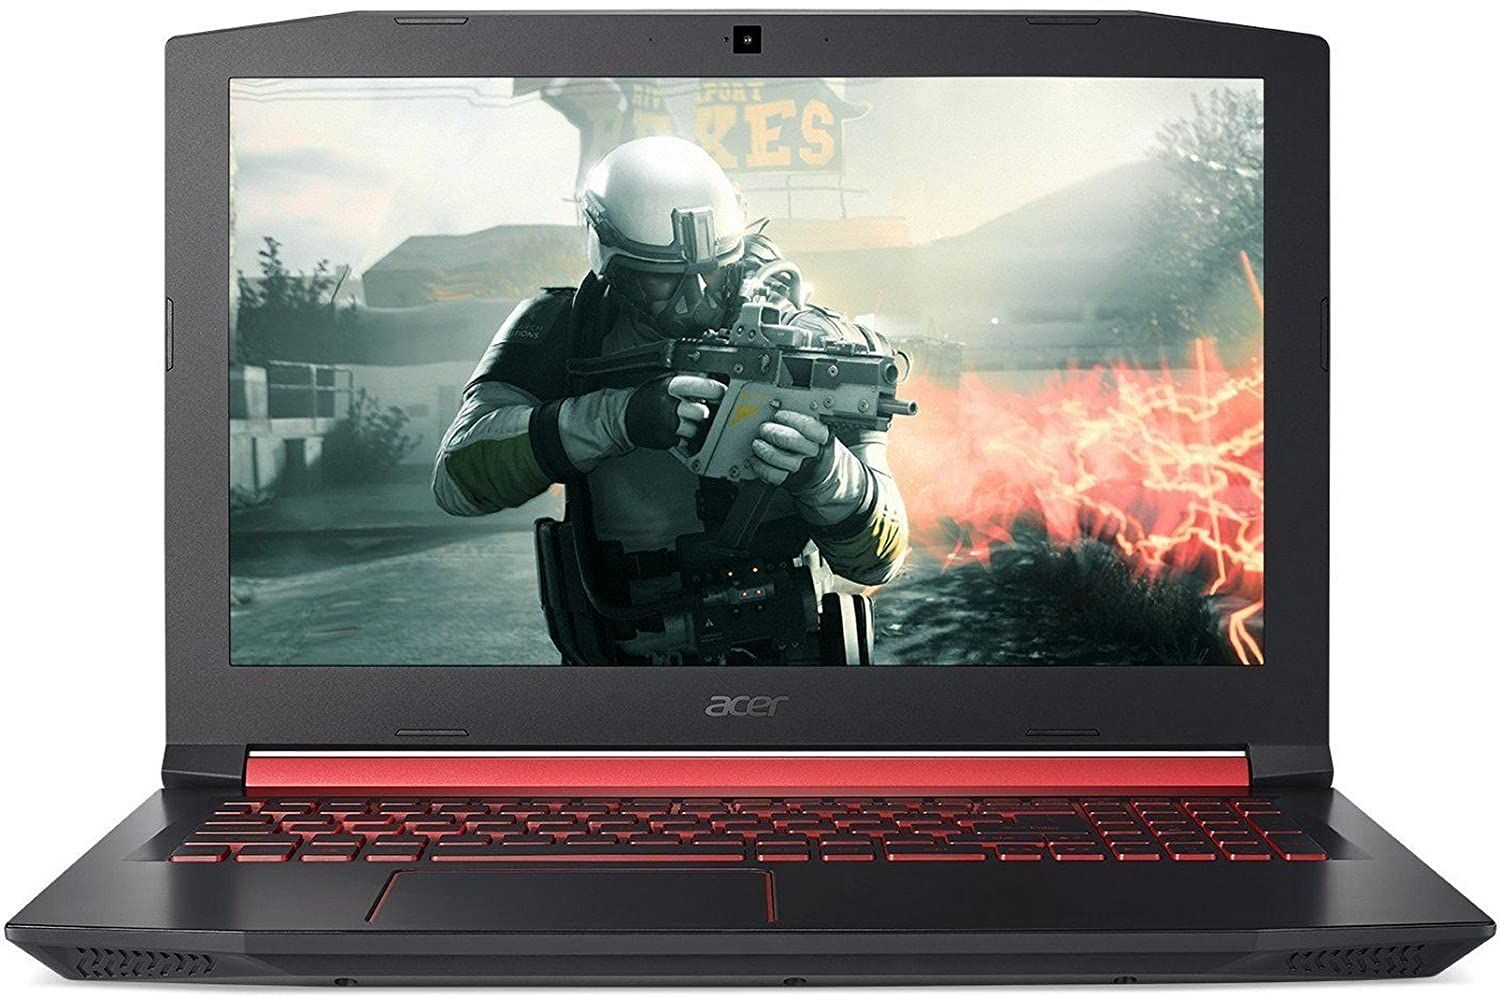 /5-best-budget-gaming-laptops-under-dollar800-wrev33e3 feature image